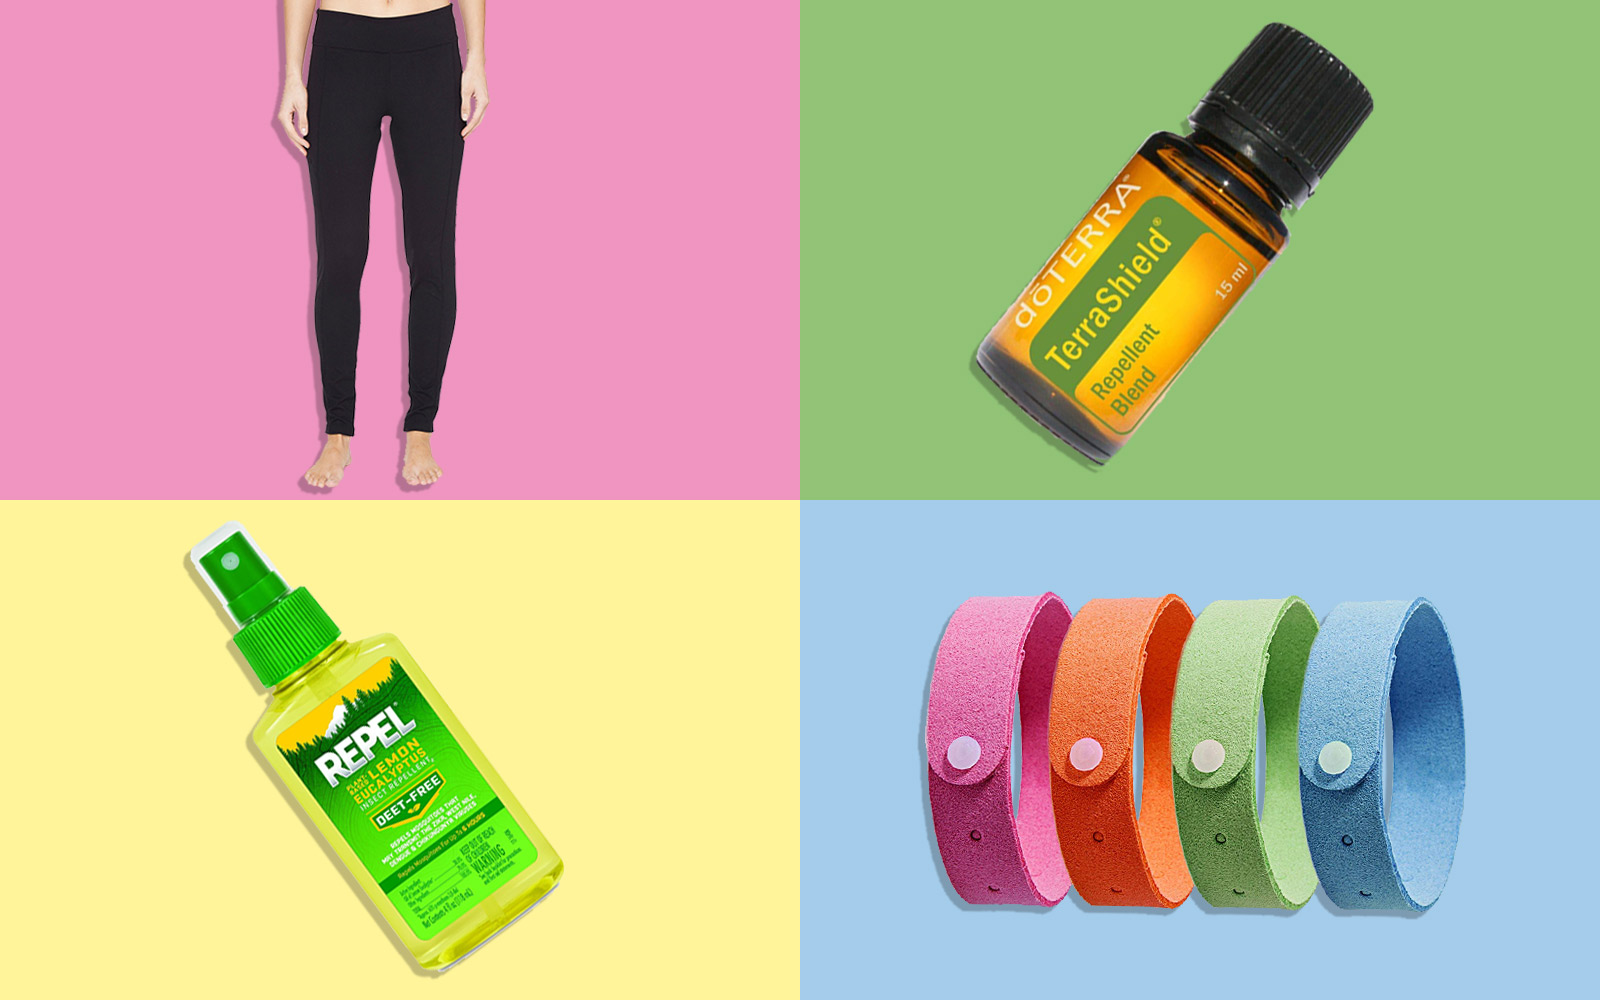 The Best Natural Insect Repellents in 2019